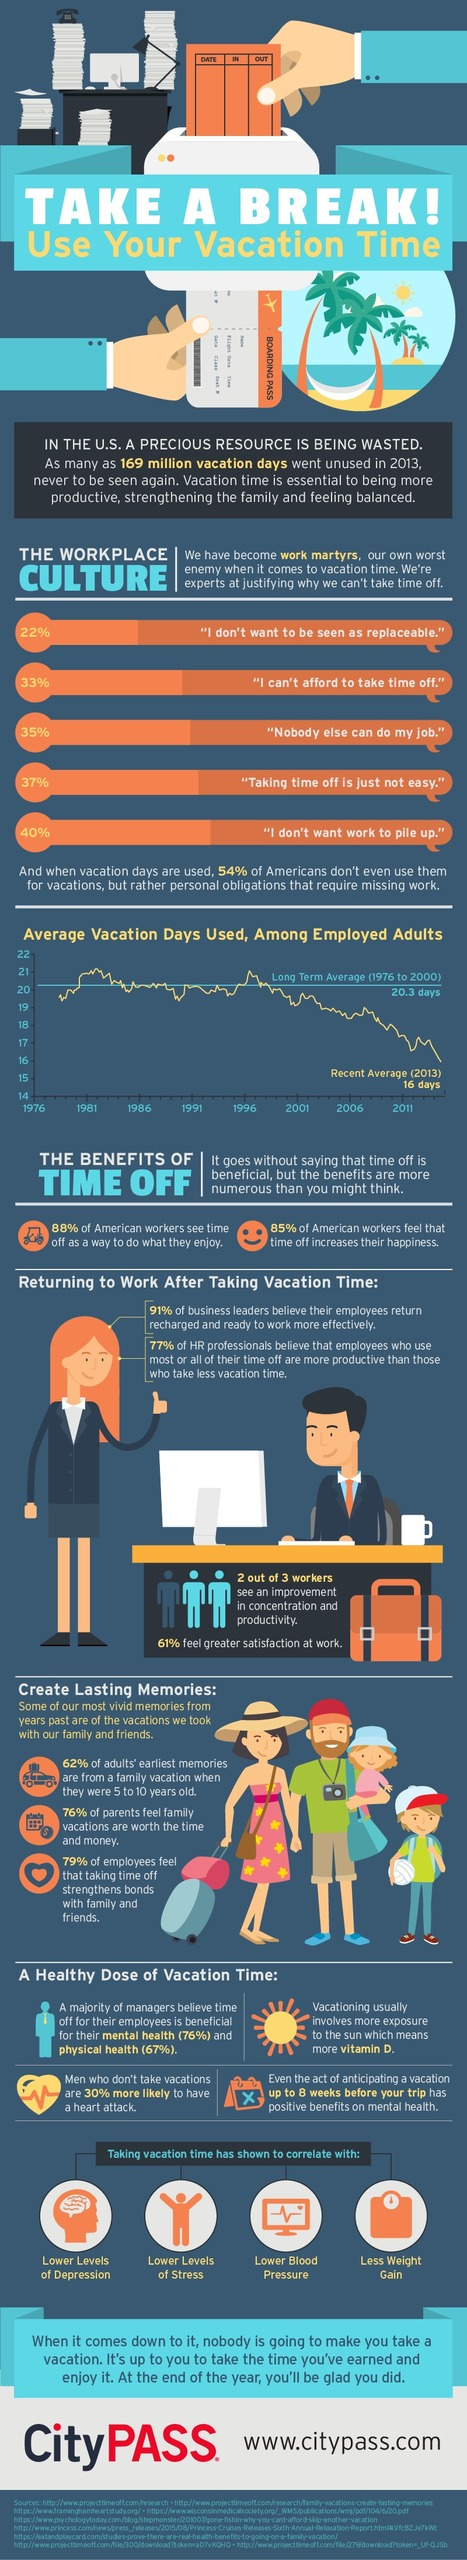 Why You Should Use Your Vacation Time [Infographic] | Tourism Innovation | Scoop.it